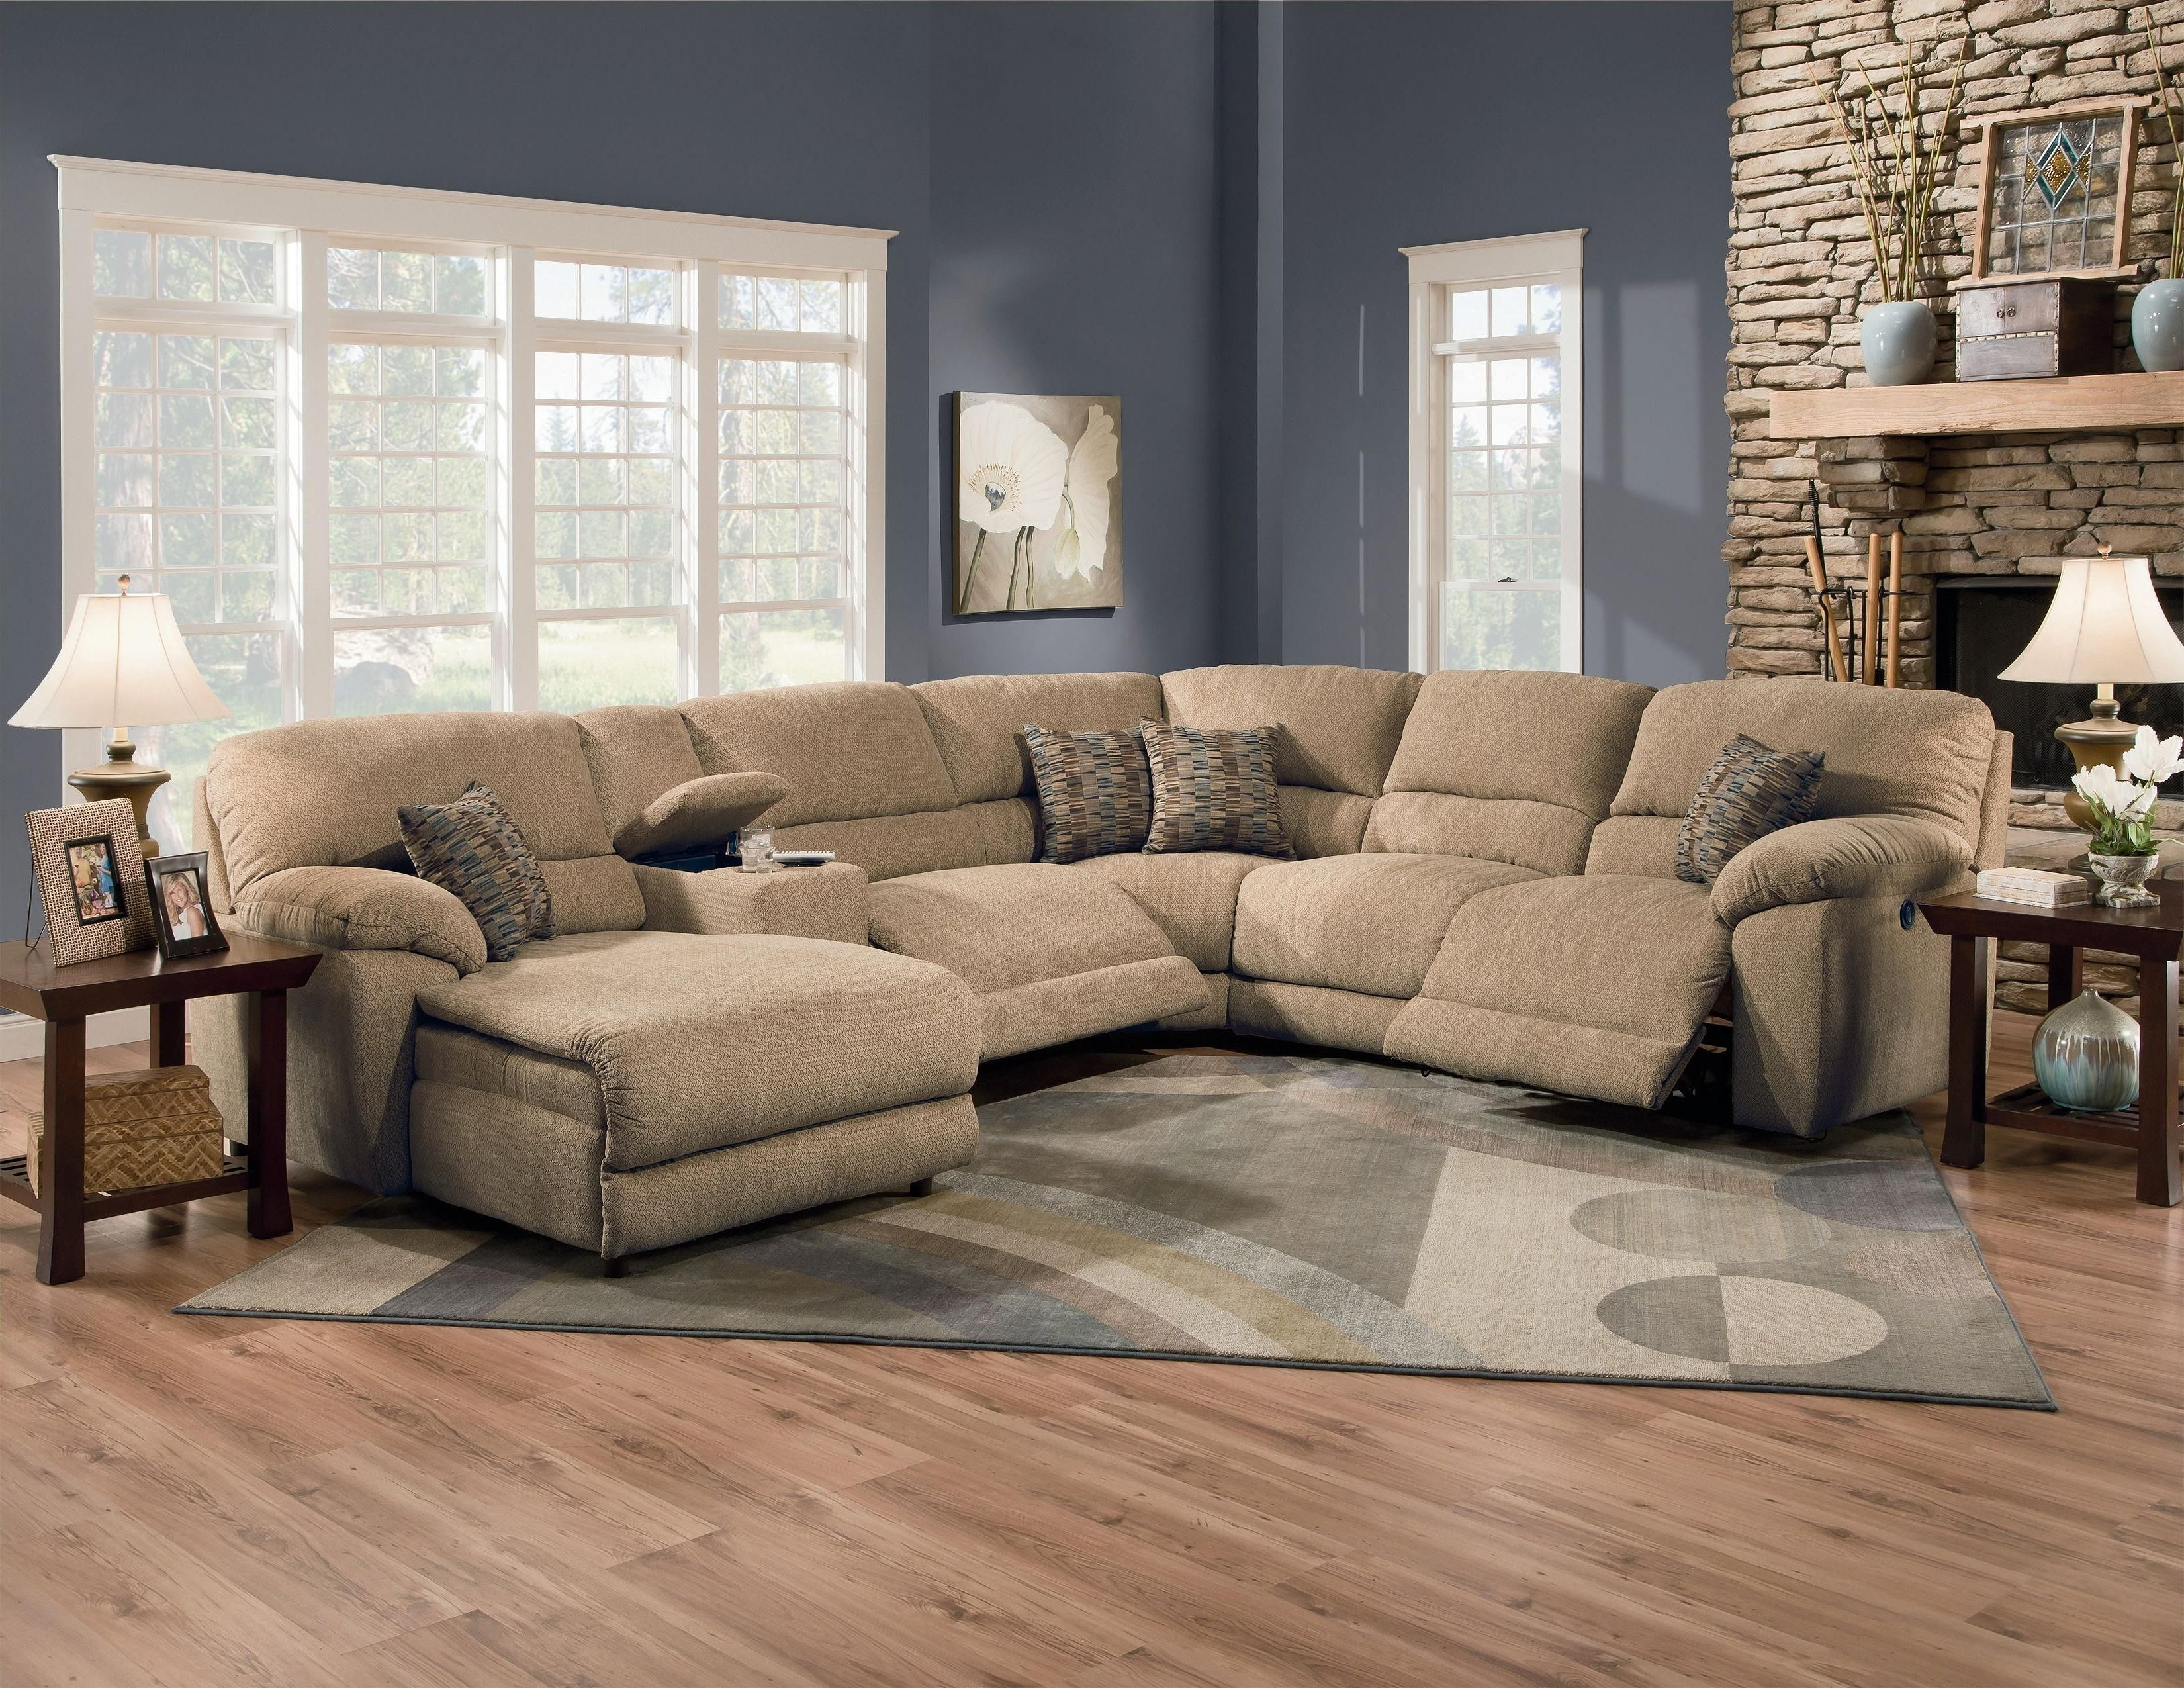 Lane Furniture: Rivers Collection Featuring Power Reclining inside Jackson 6 Piece Power Reclining Sectionals With  Sleeper (Image 13 of 30)